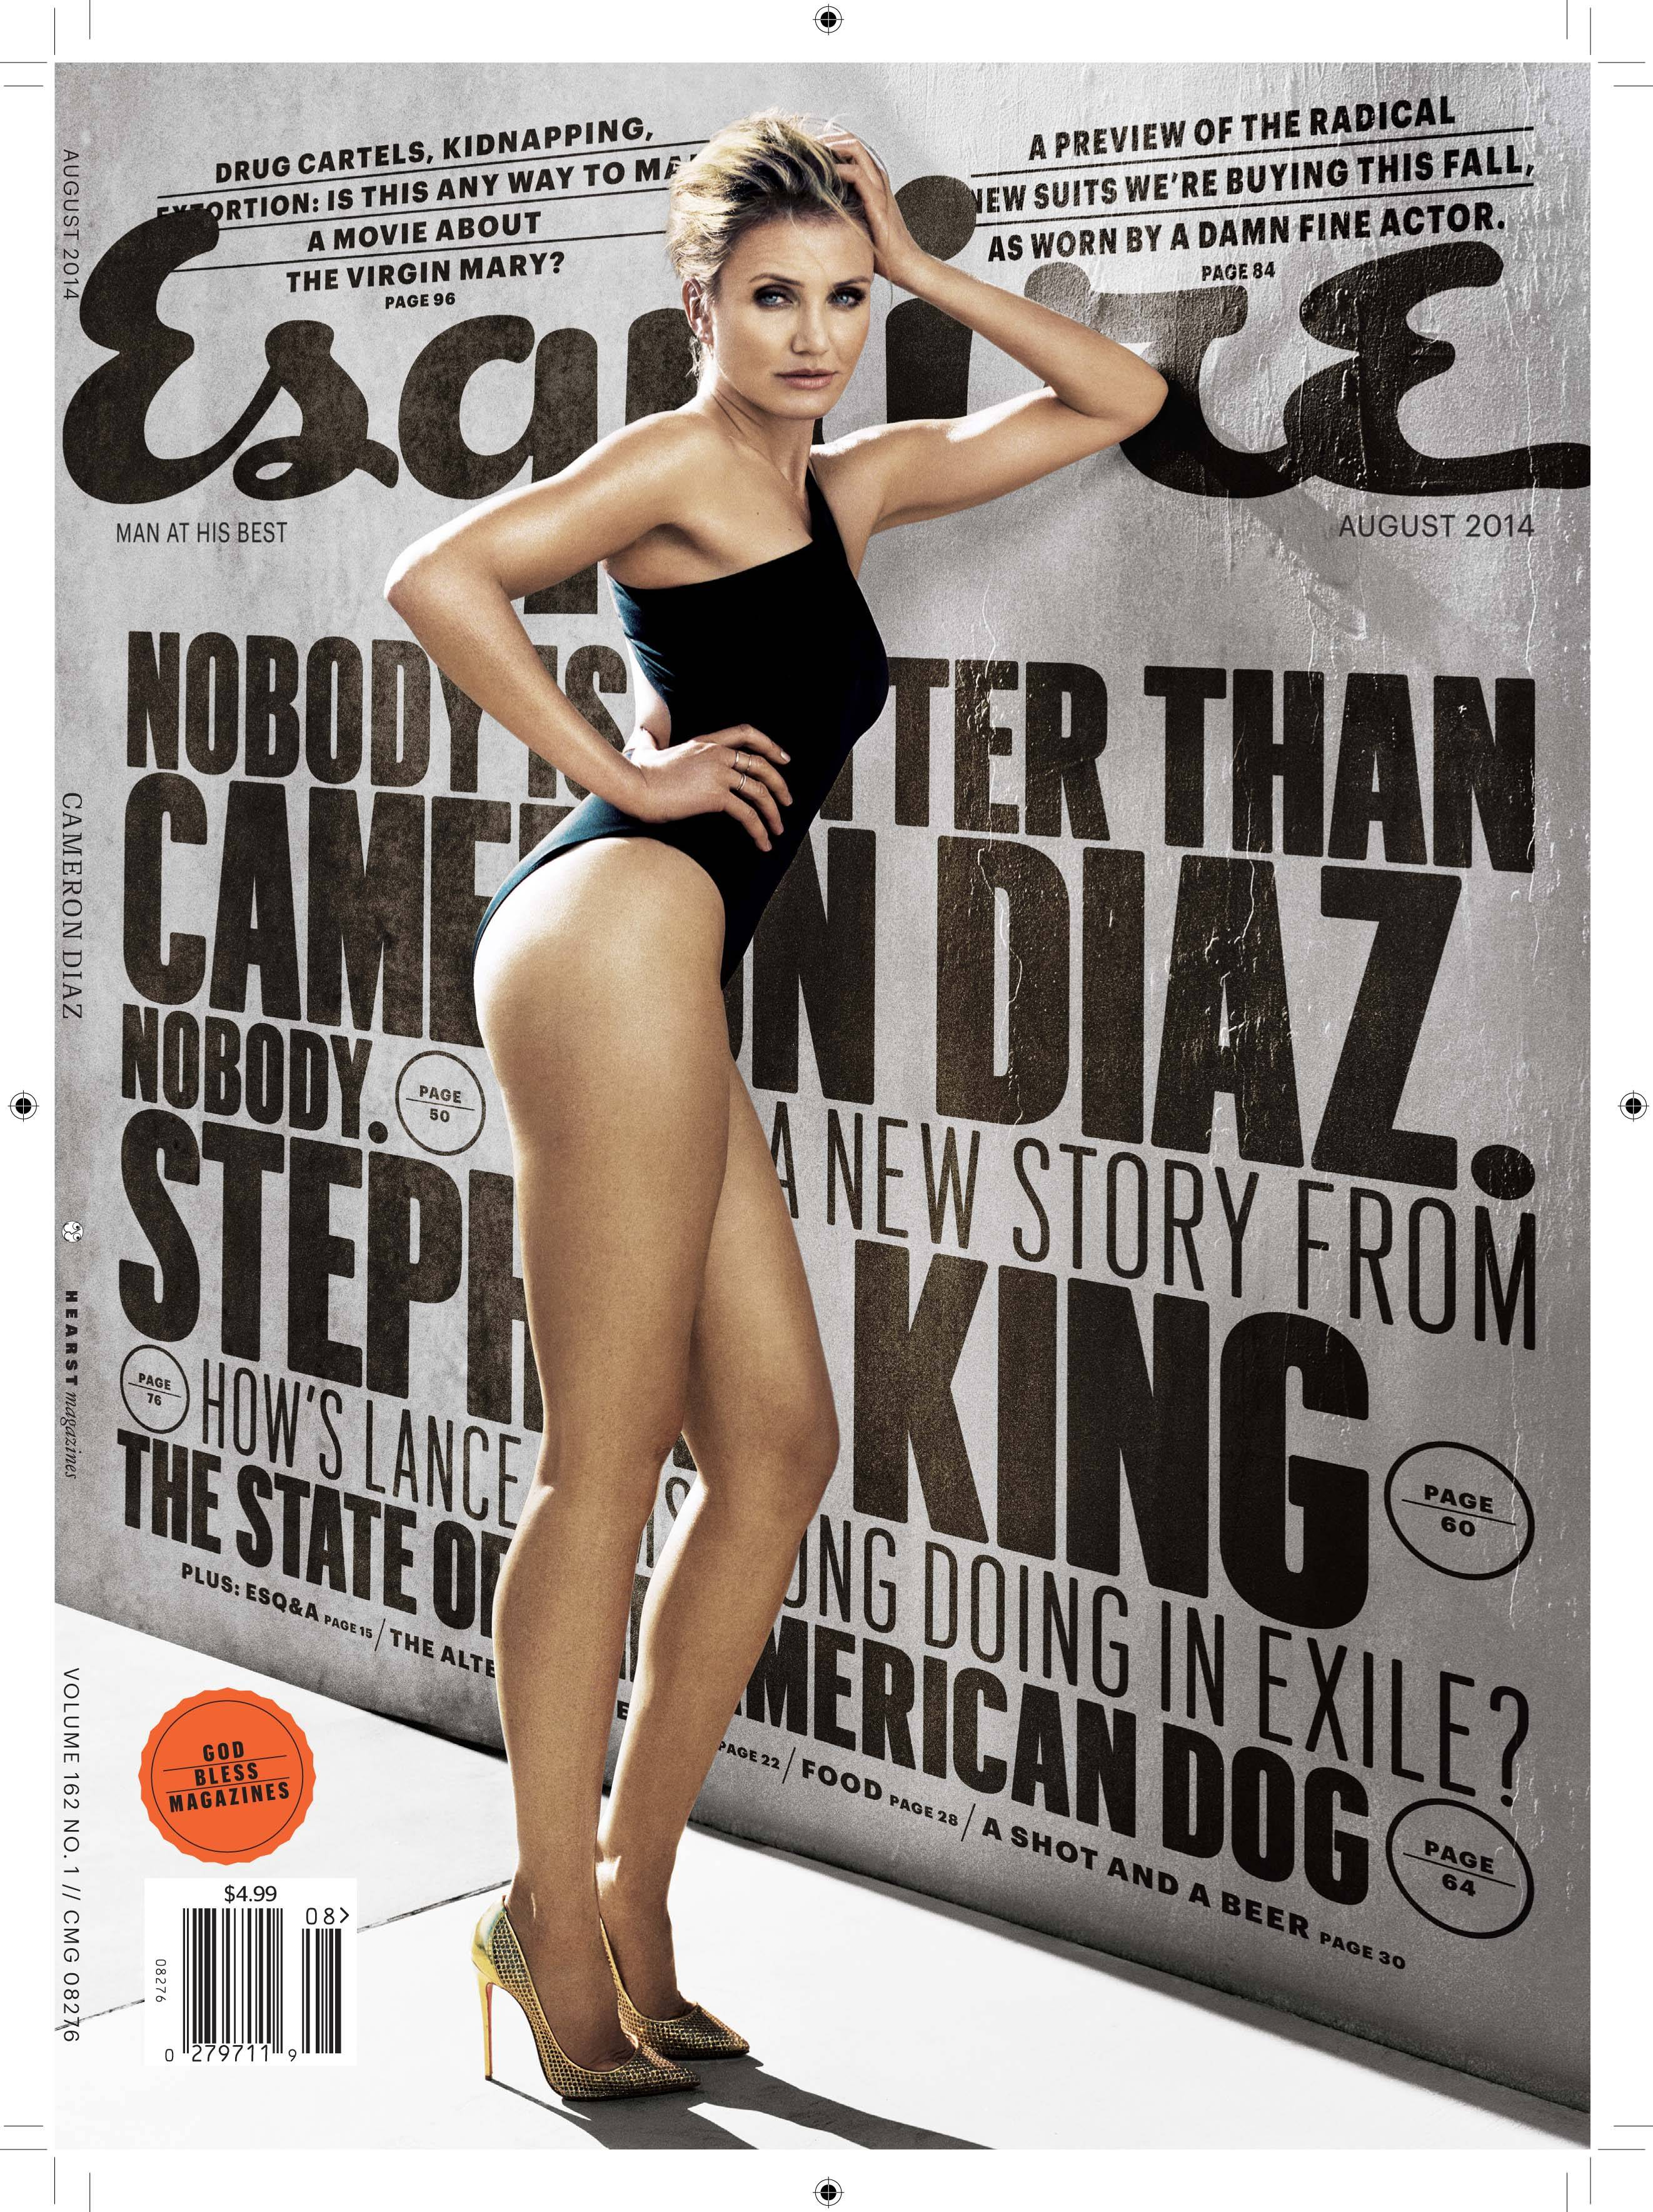 Cameron Diaz graces the cover of the August issue of Esquire magazine.